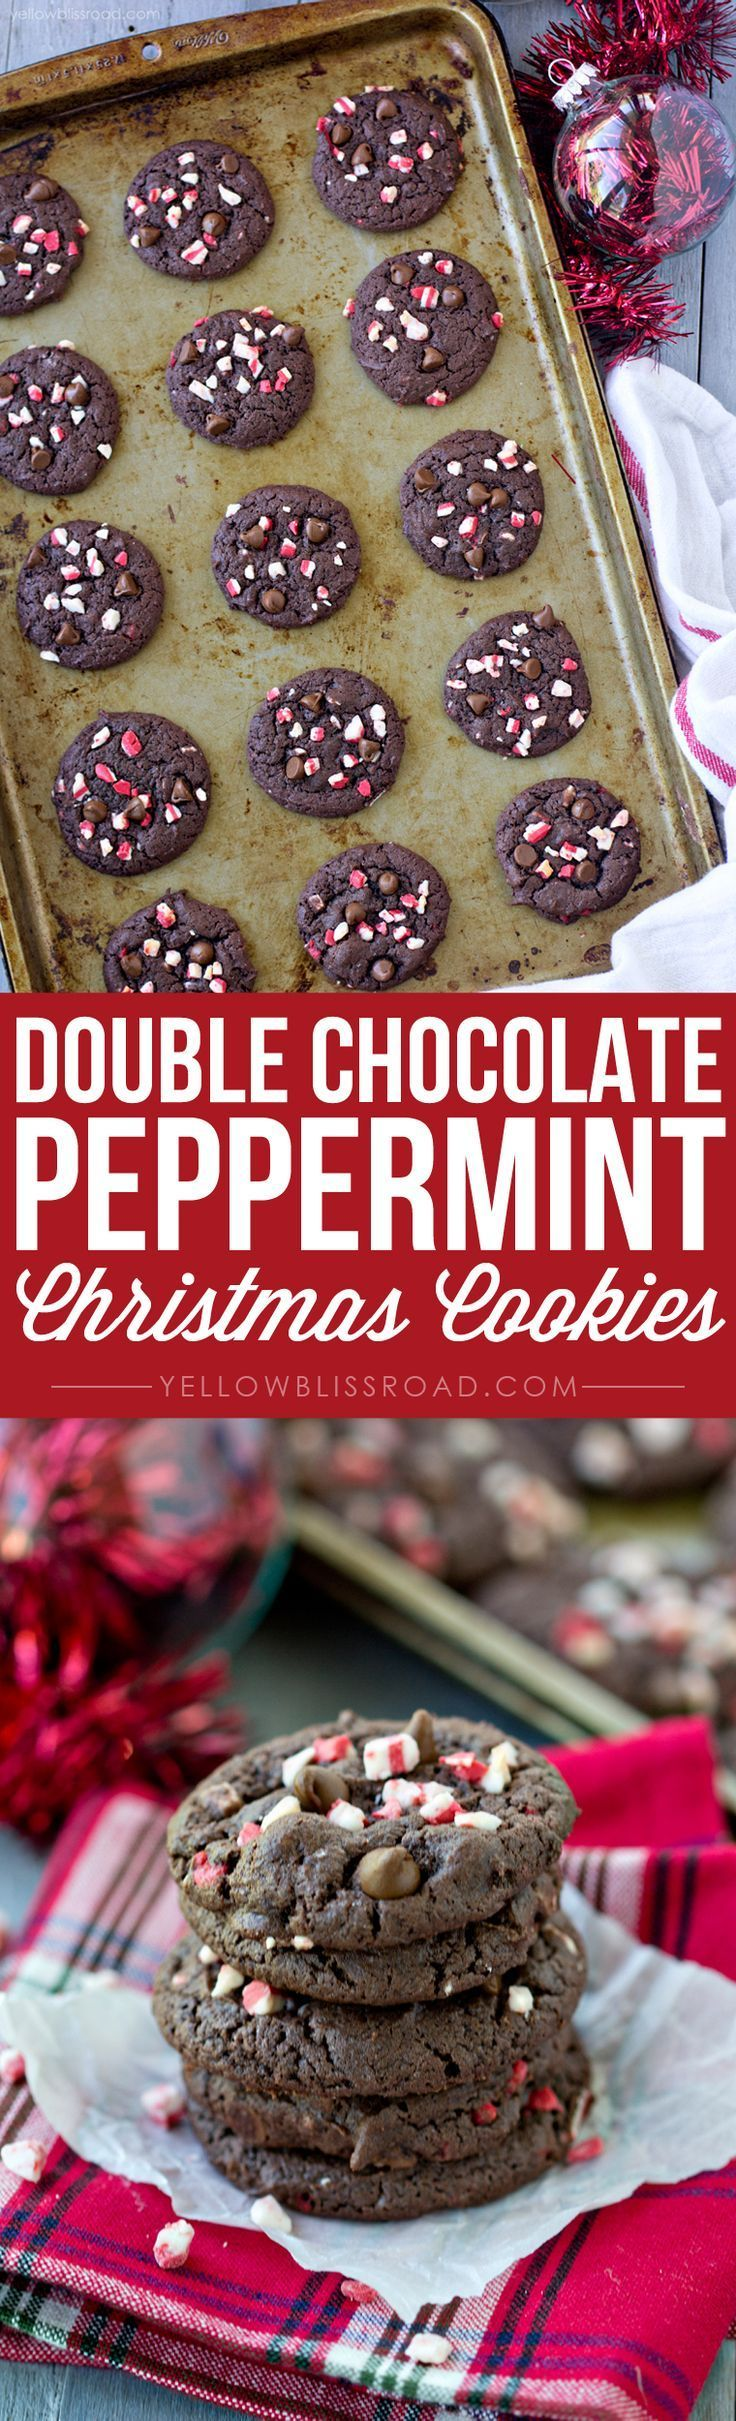 5 Ingredient Double Chocolate Peppermint Cookies